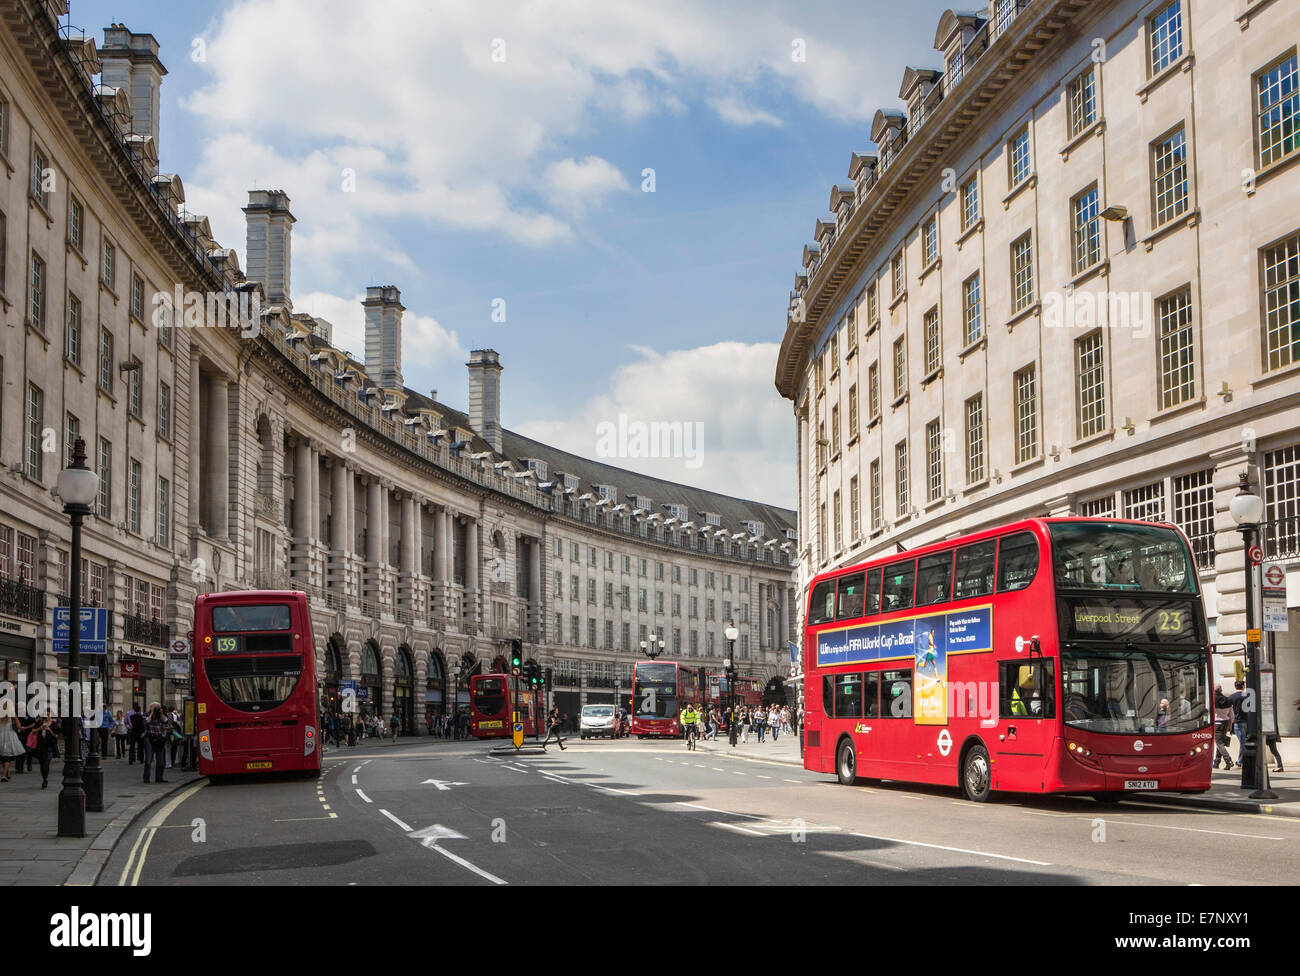 City, London, England, UK, architecture, bus, famous, red, shopping, street, tourism, travel - Stock Image